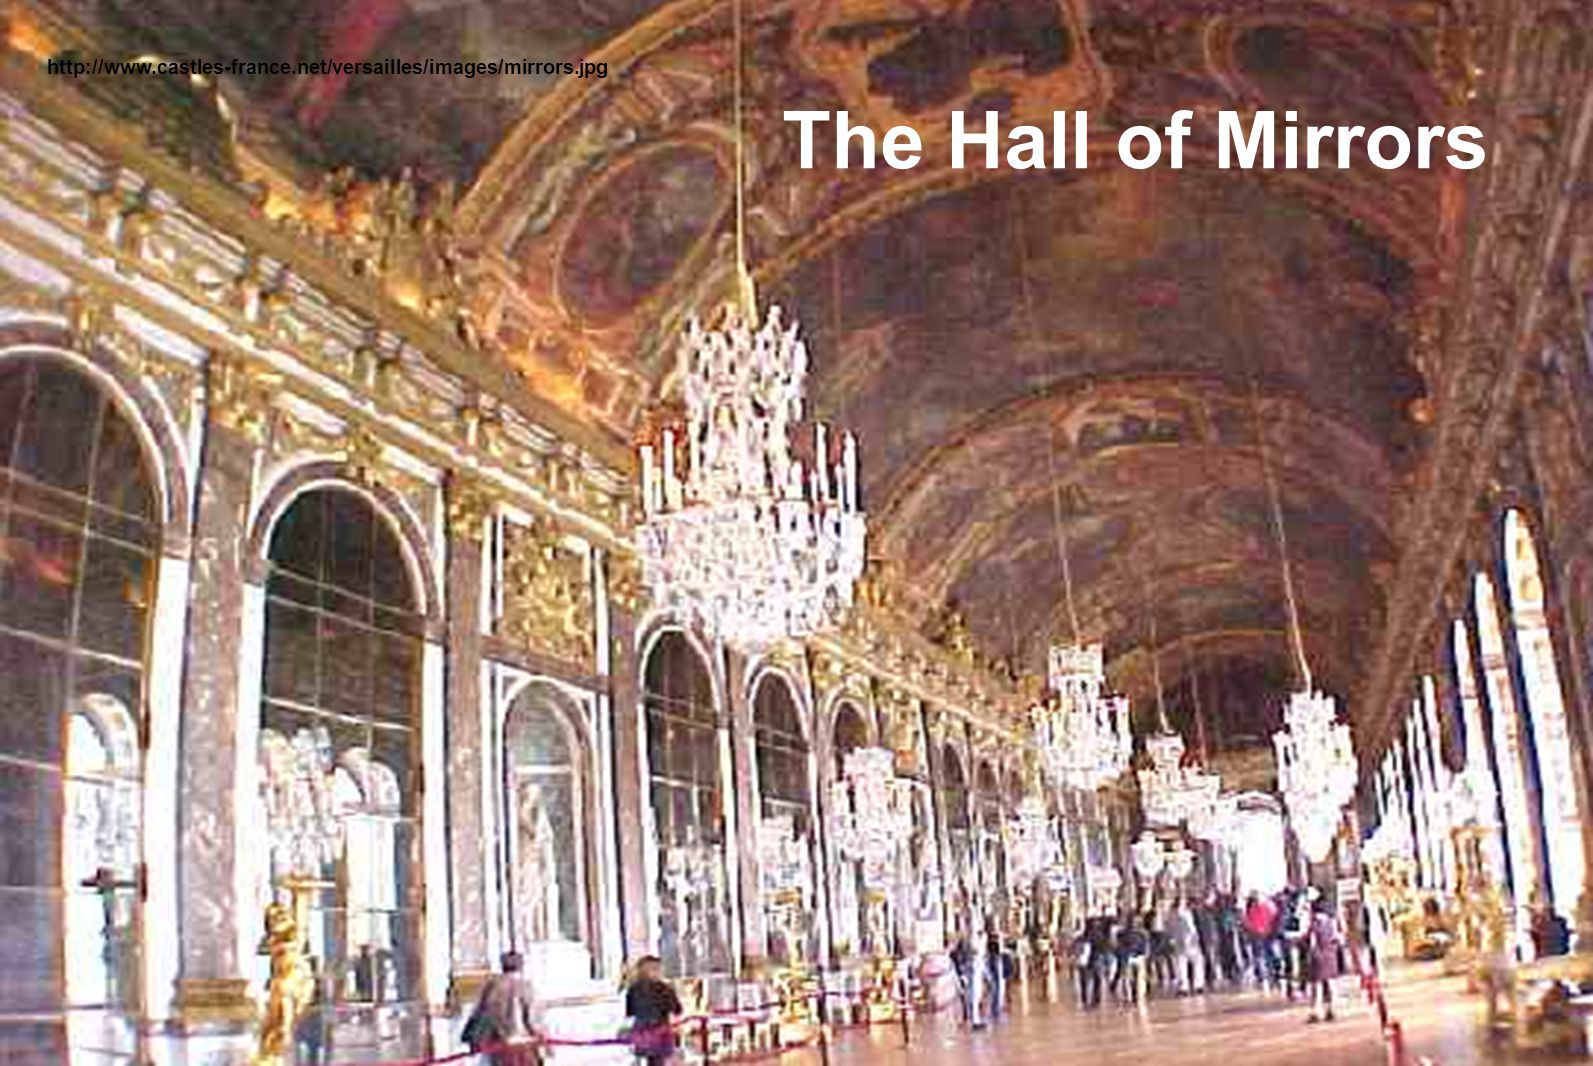 http://www.castles-france.net/versailles/images/mirrors.jpg The Hall of Mirrors